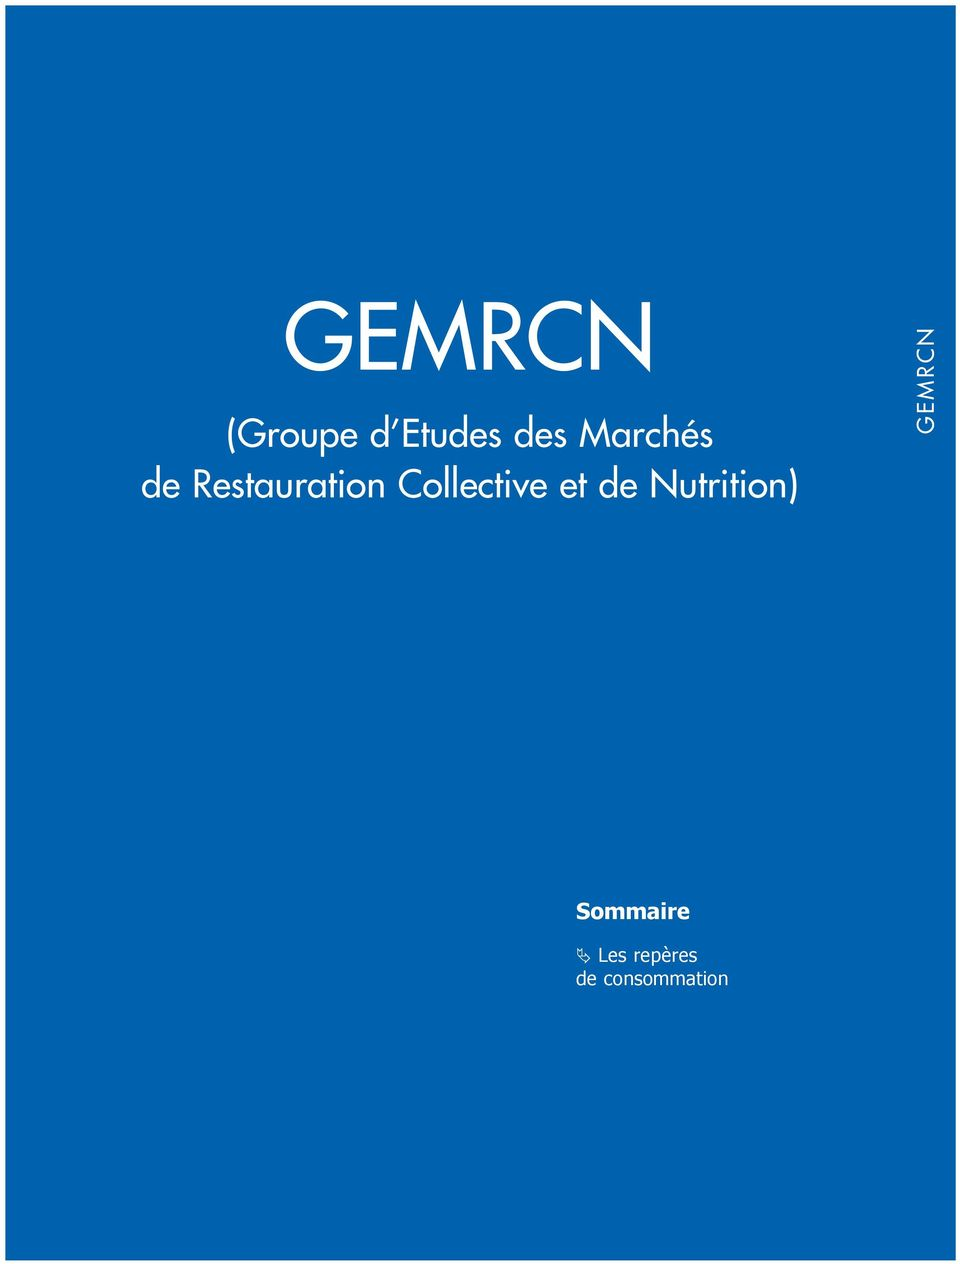 Collective et de Nutrition)